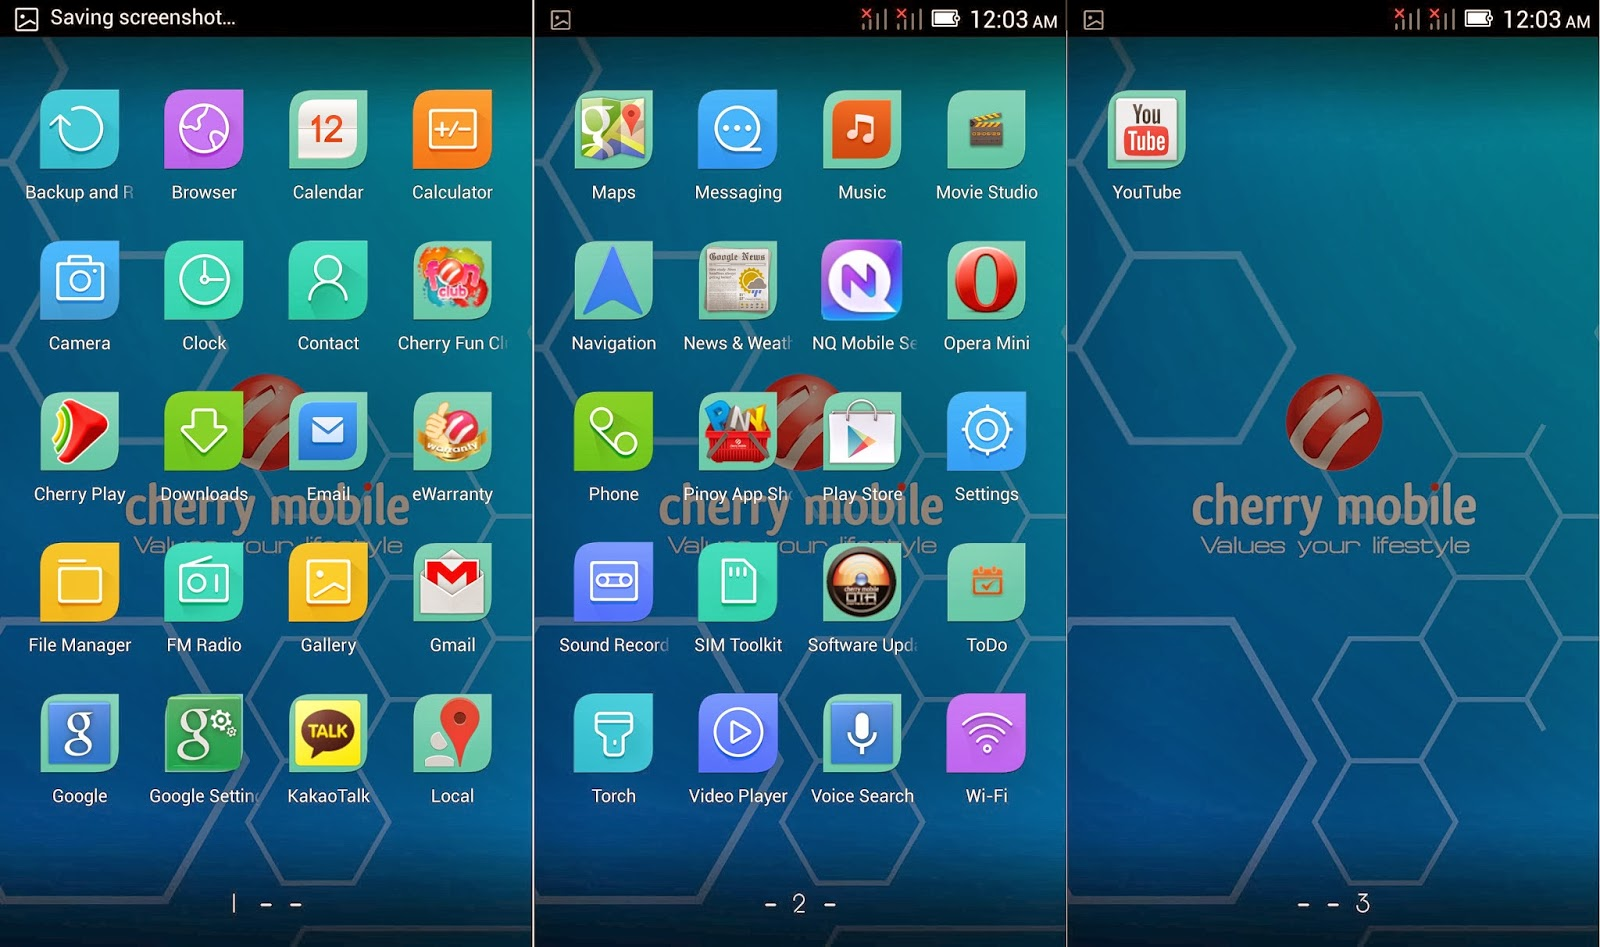 Cherry Mobile Cosmos Z2 Review Default Apps